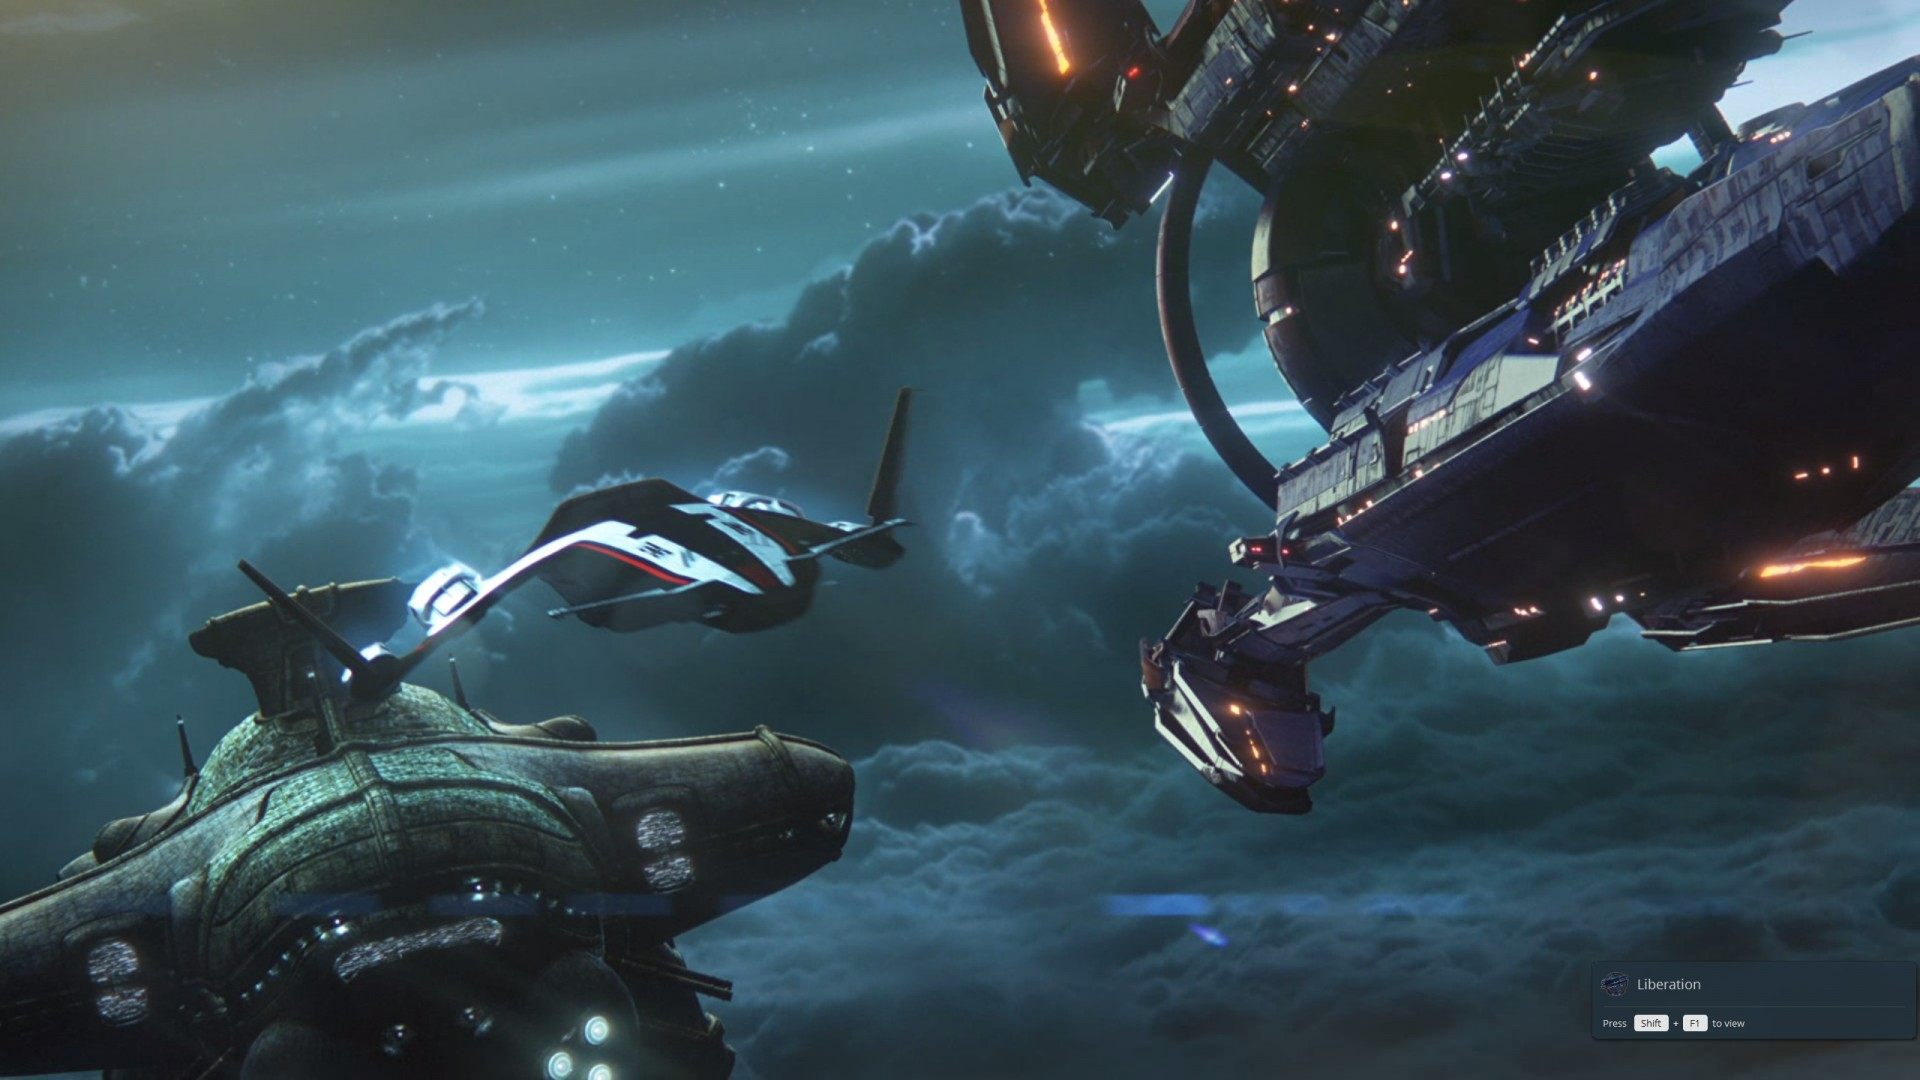 Hunting The Archon Mass Effect Andromeda Mission